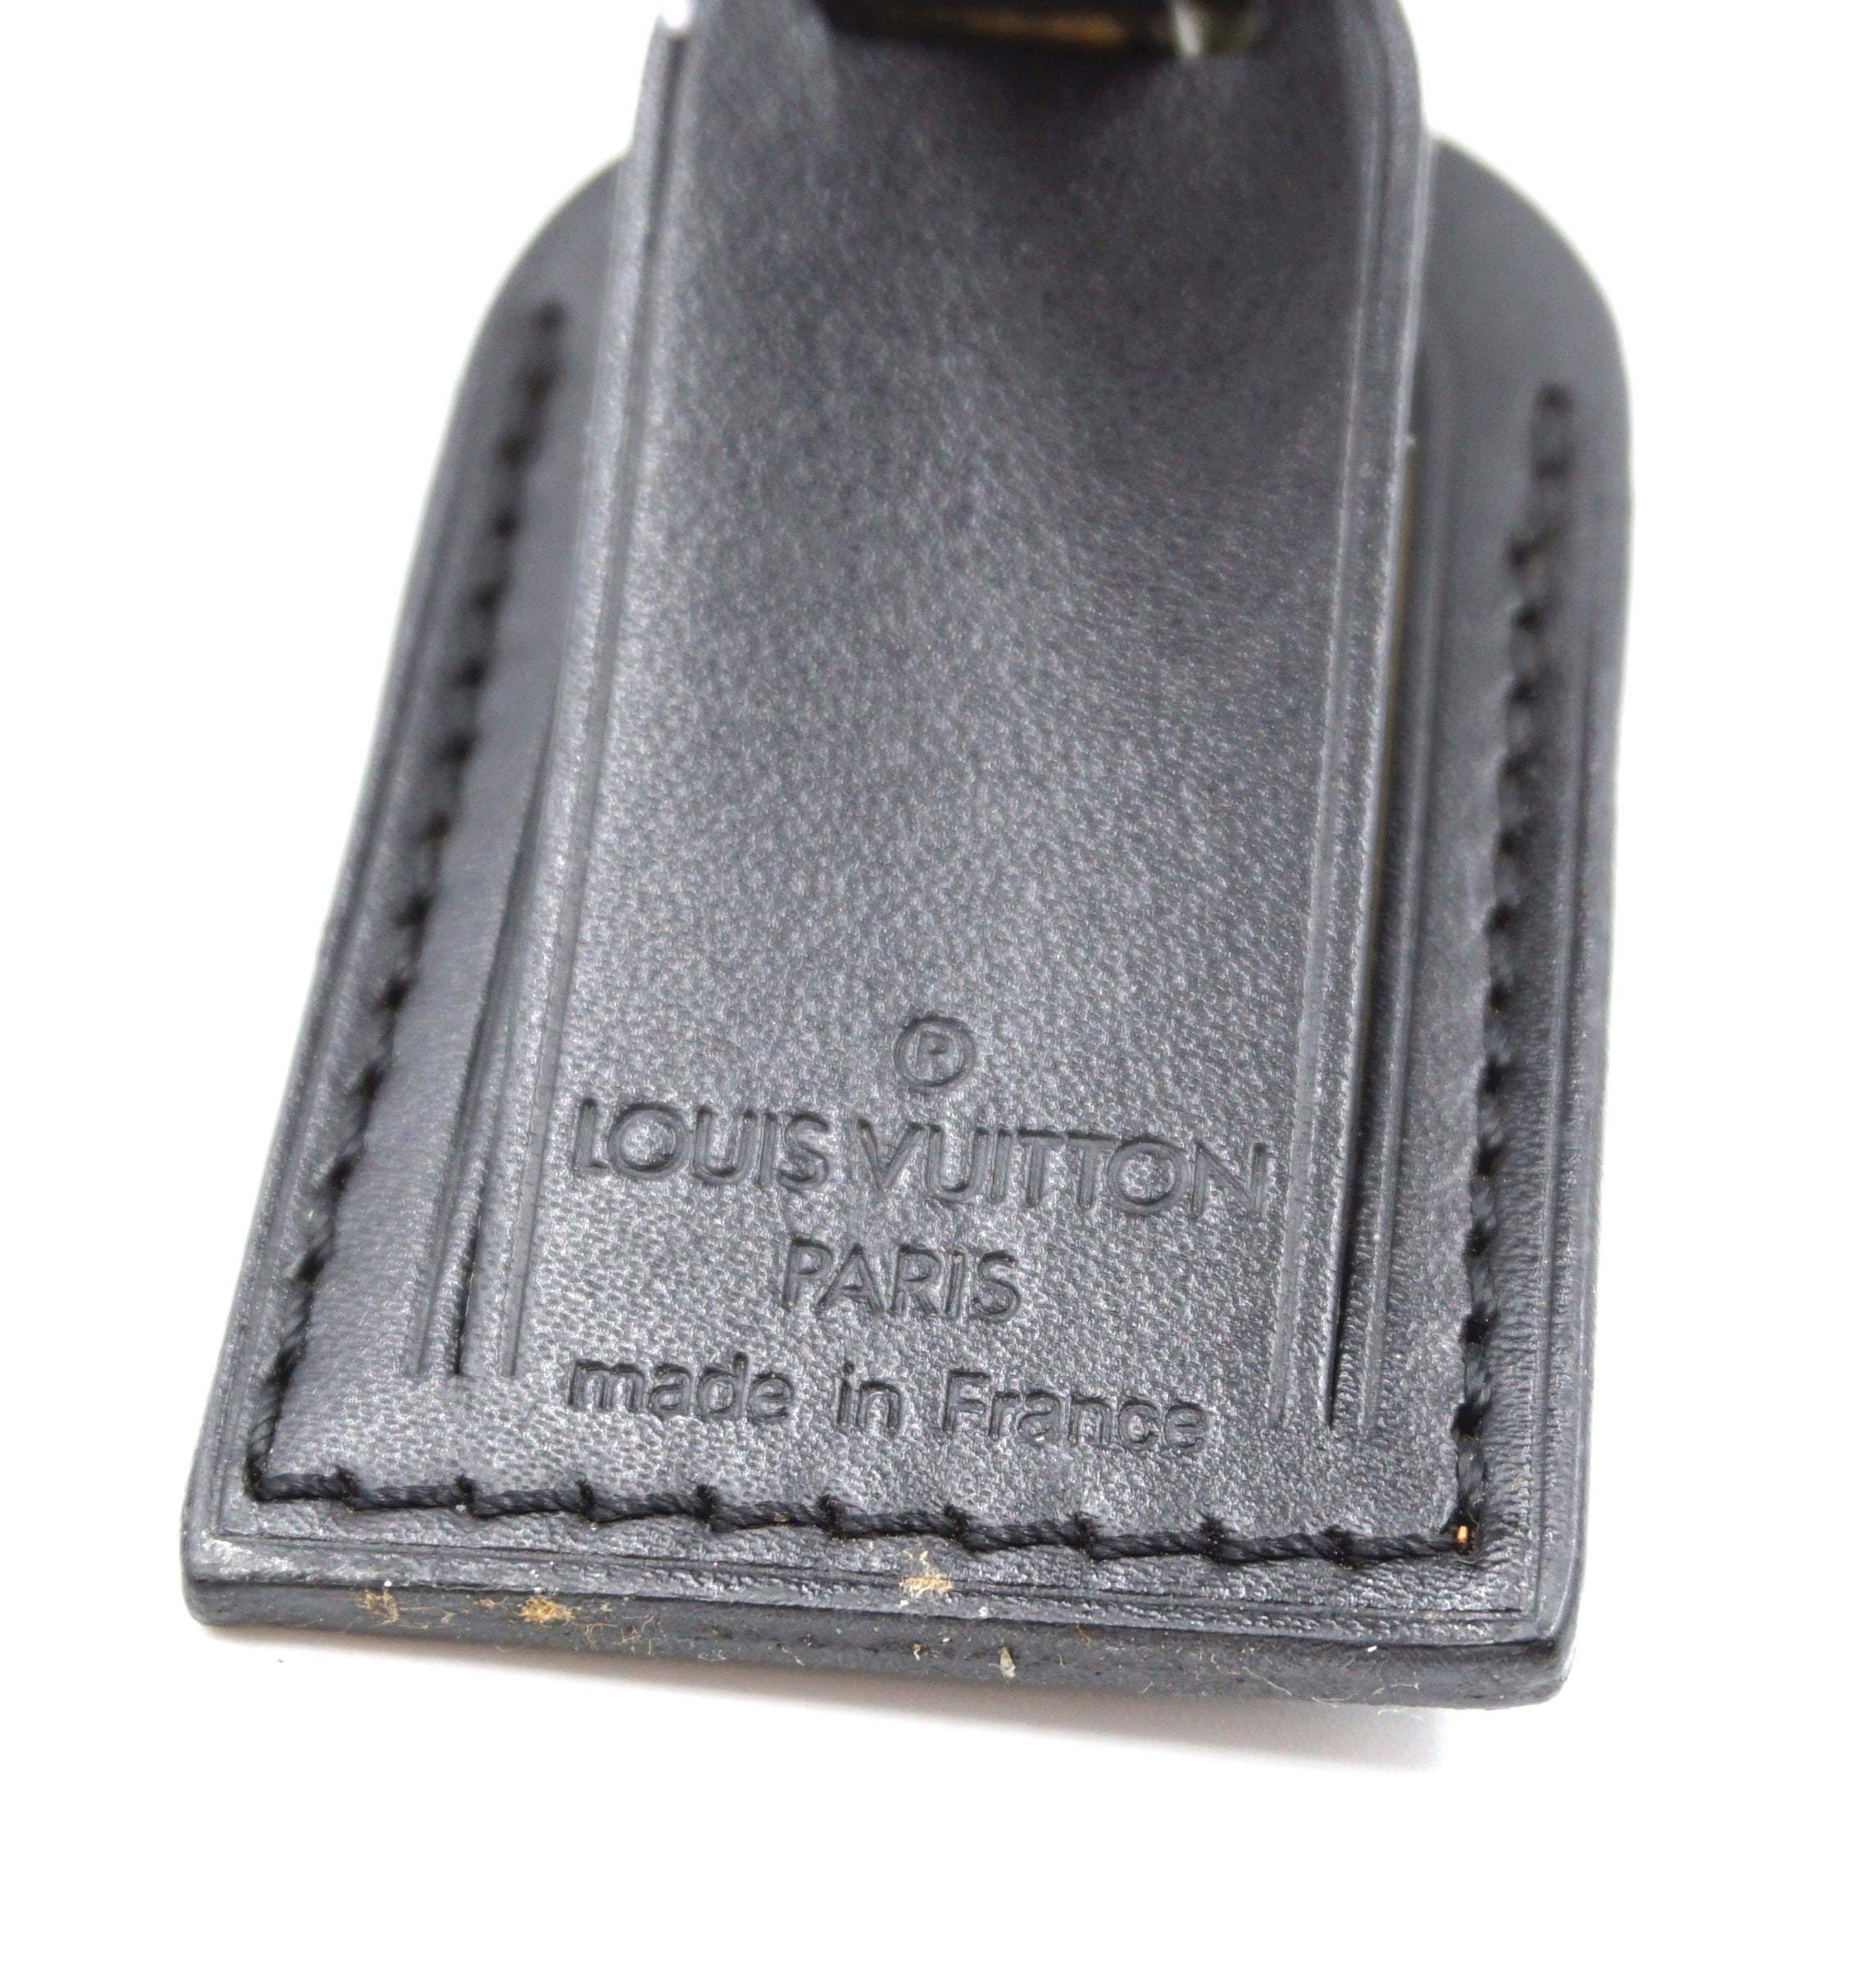 Louis Vuitton Black Smooth Calf Leather Luggage Tag